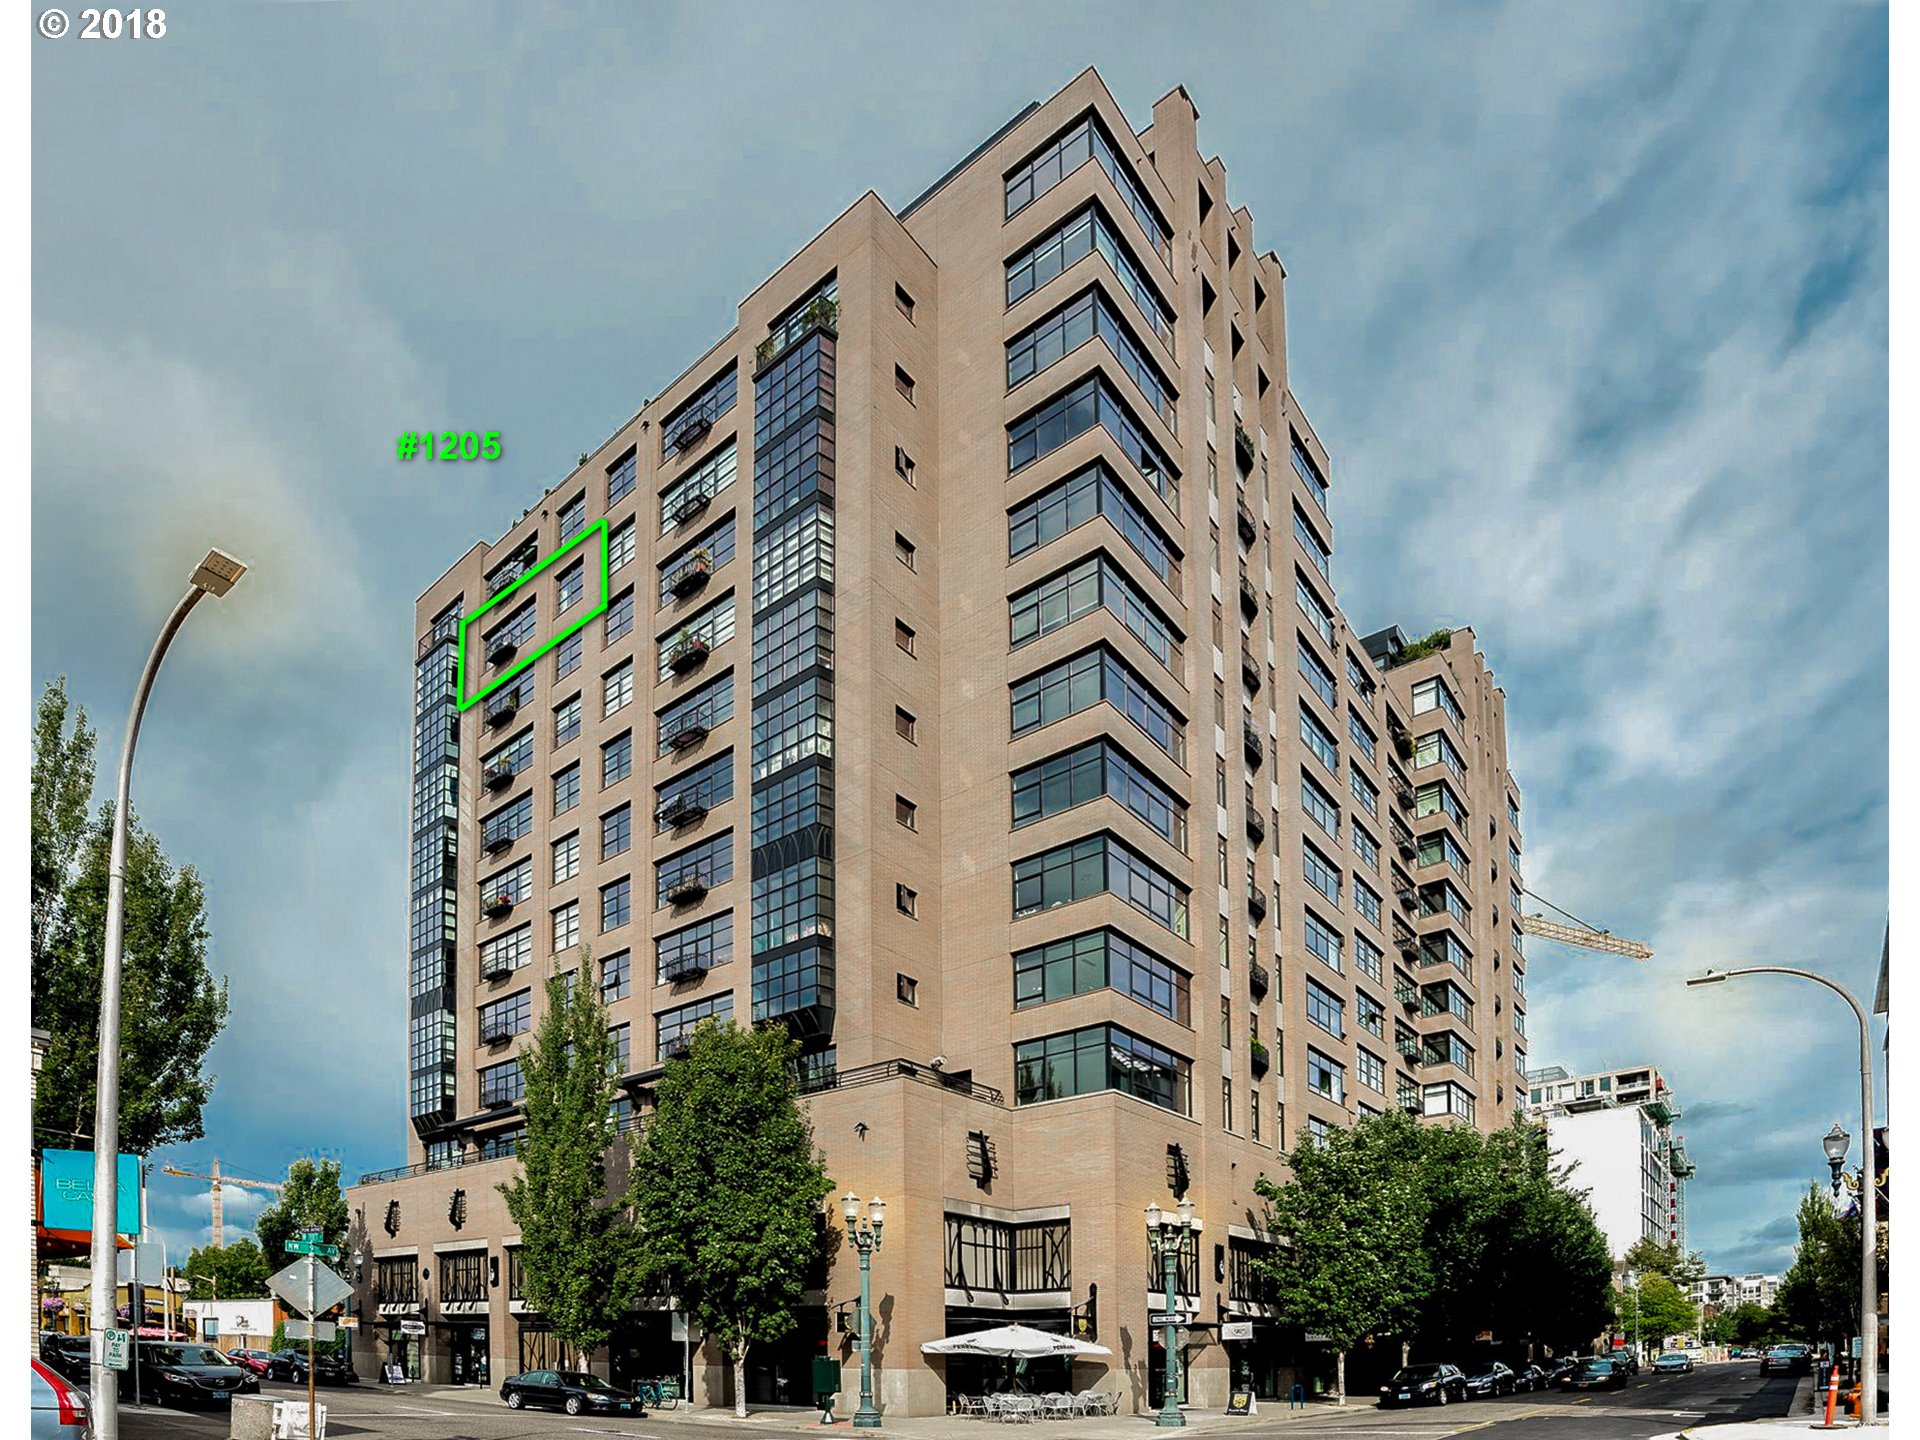 333 NW 9TH AVE Unit 1205 Portland, OR 97209 - MLS #: 18660677